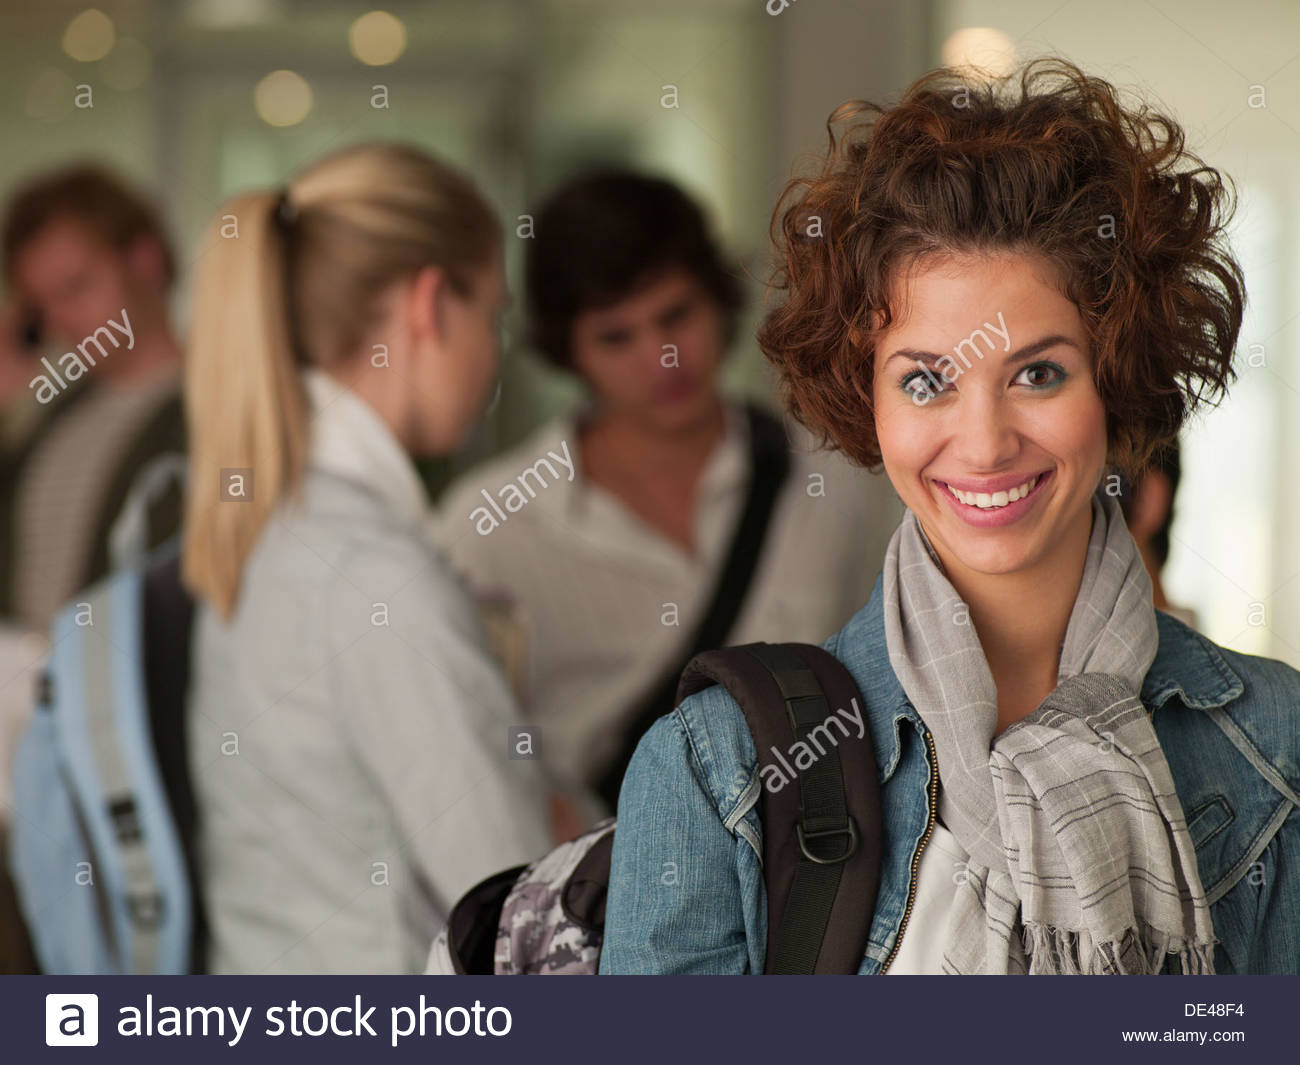 Female college student smiling in classroom - Stock Image